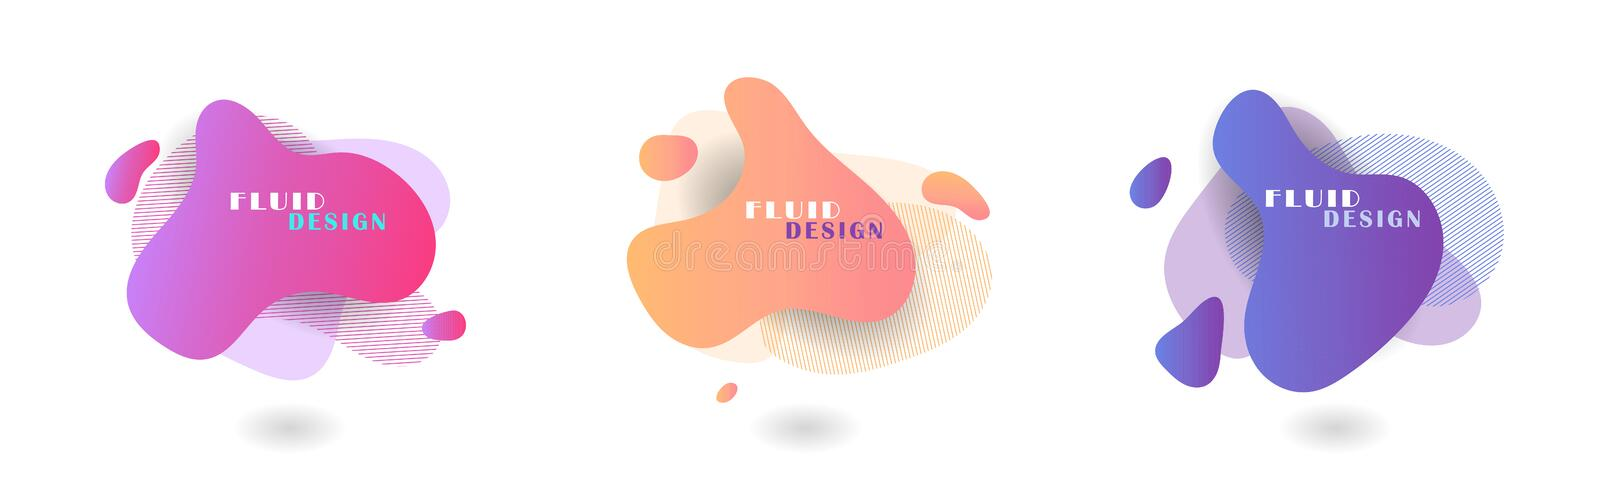 Set of abstract modern graphic elements.Fluid color abstract geometric shapes. Abstract background. vector illustration